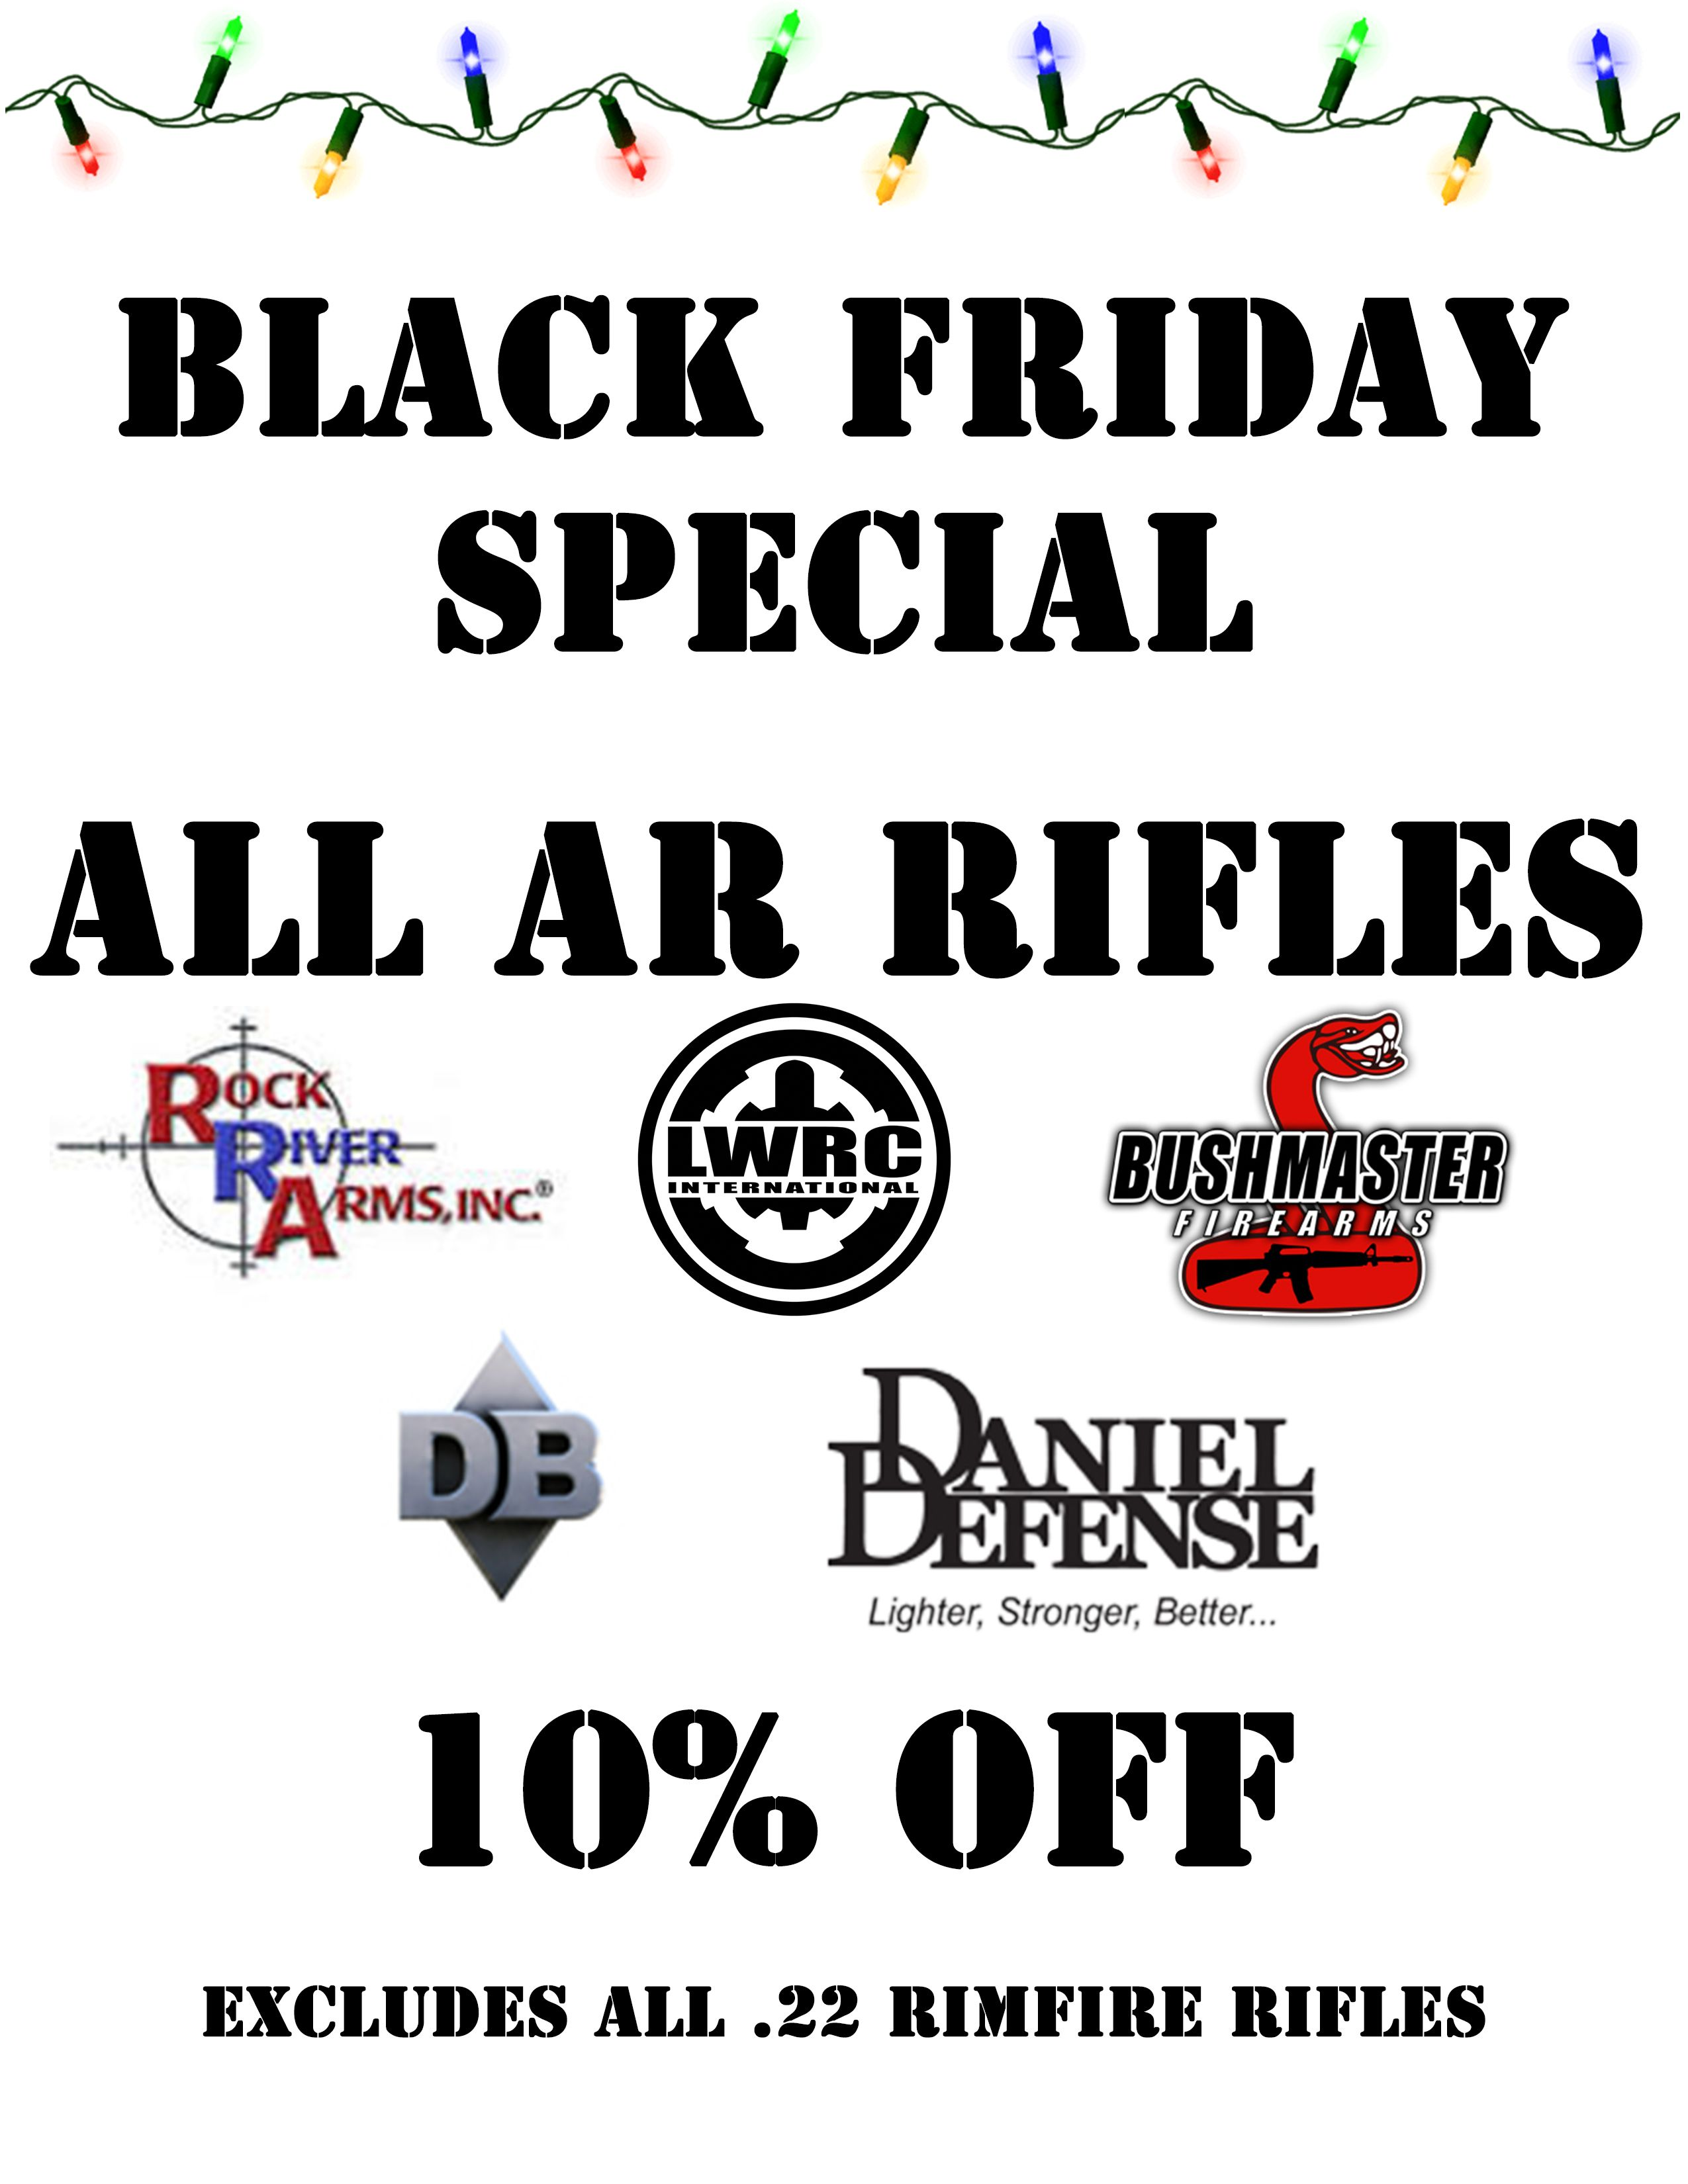 Doors Are Open Now! Black Friday At Autrey's Armory All AR Rifles are 10% OFF! The range fee is also waived for today! Some come down to shoot and stay to shop!